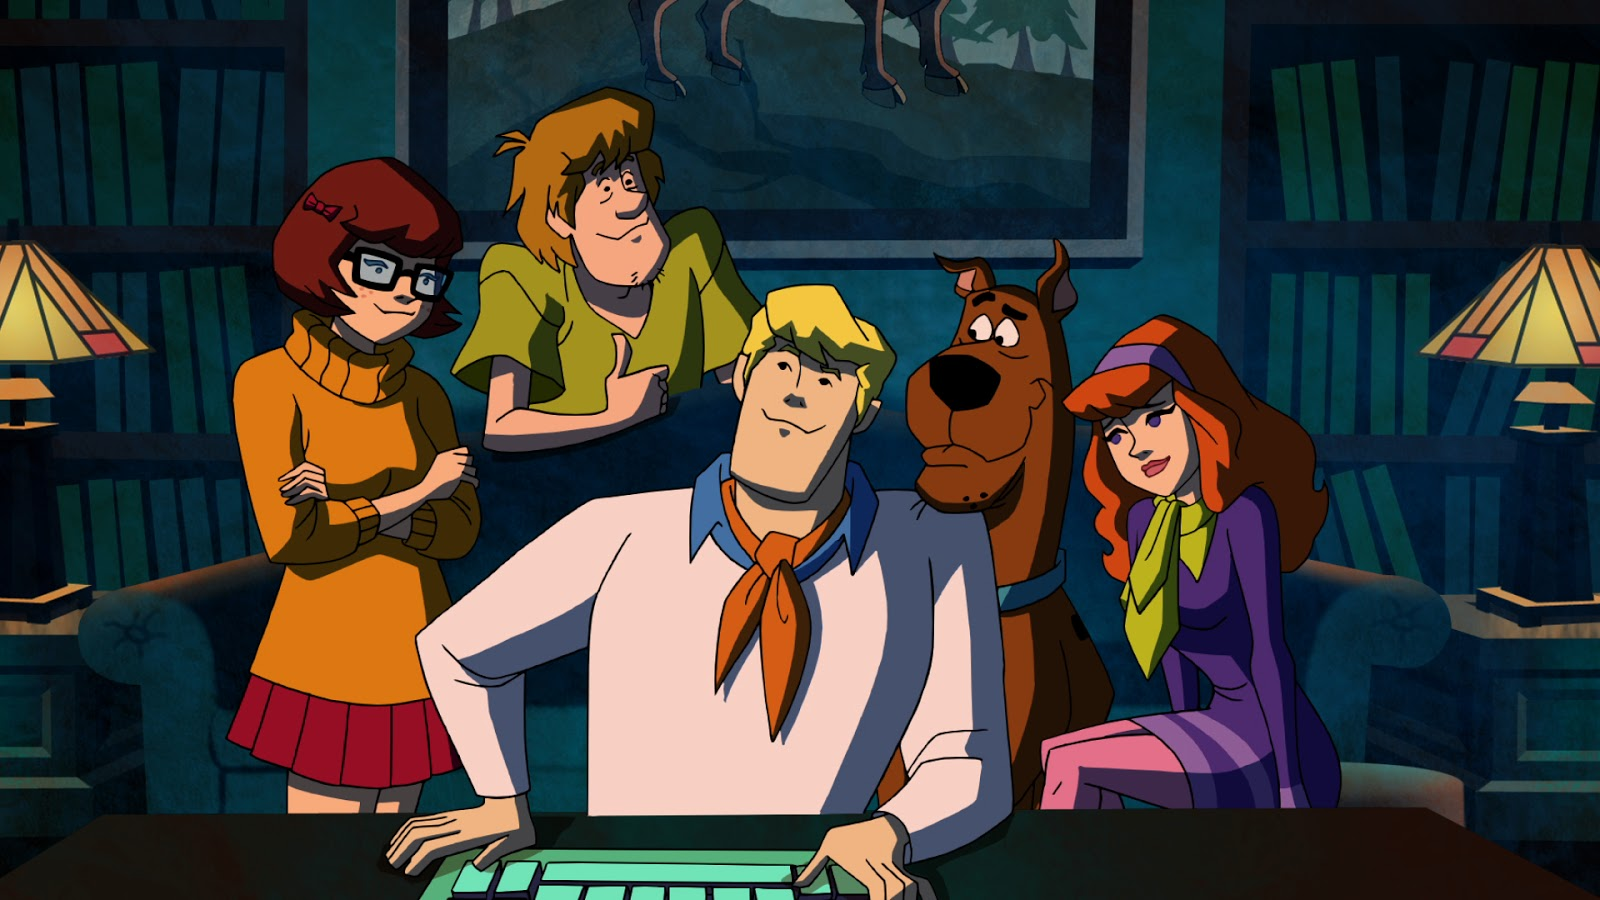 Scooby Doo hd cartoon